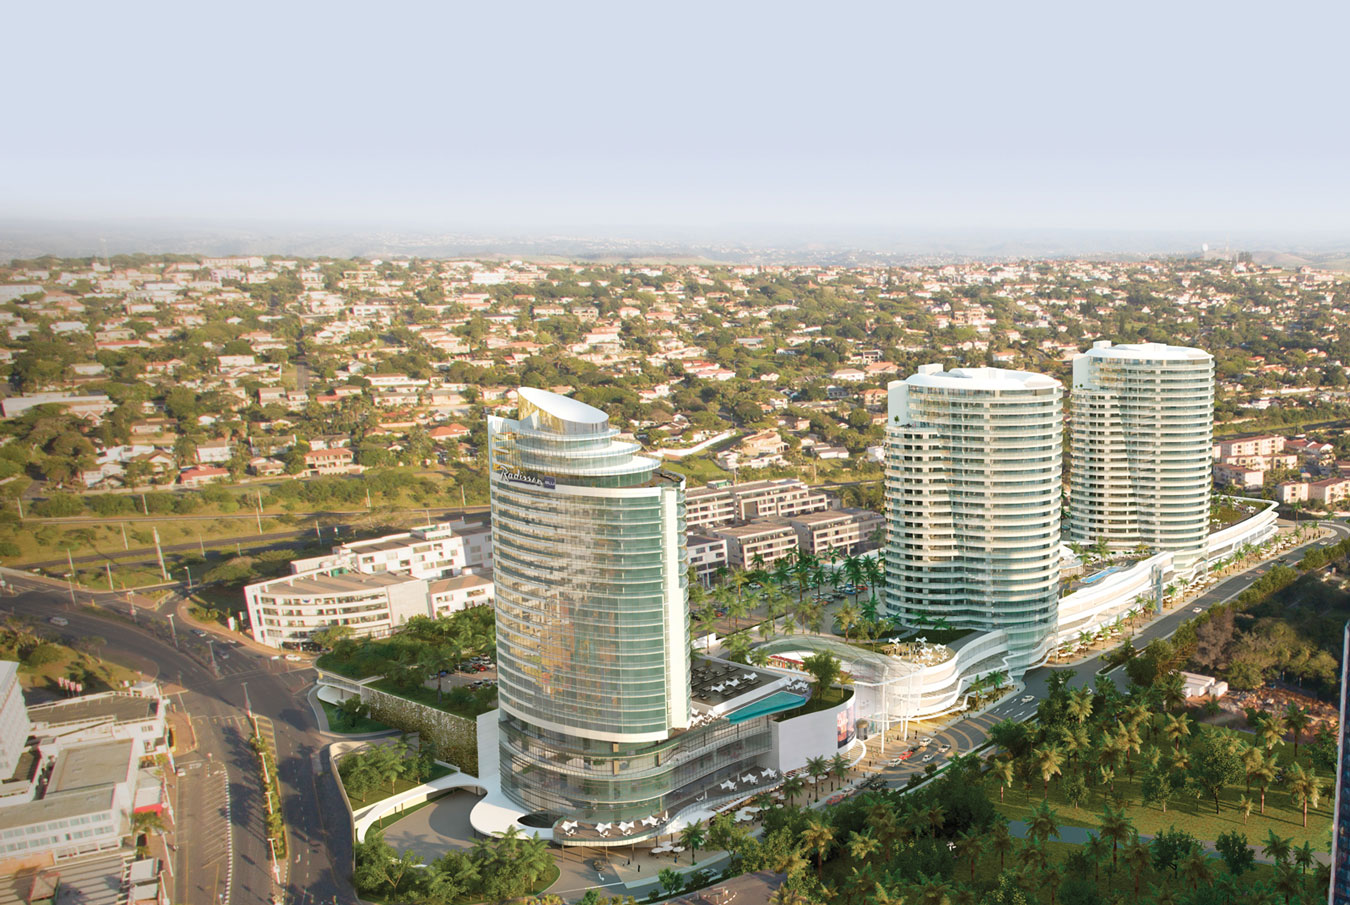 Public Shares launch at the new Oceans Umhlanga Radisson Blu Hotel